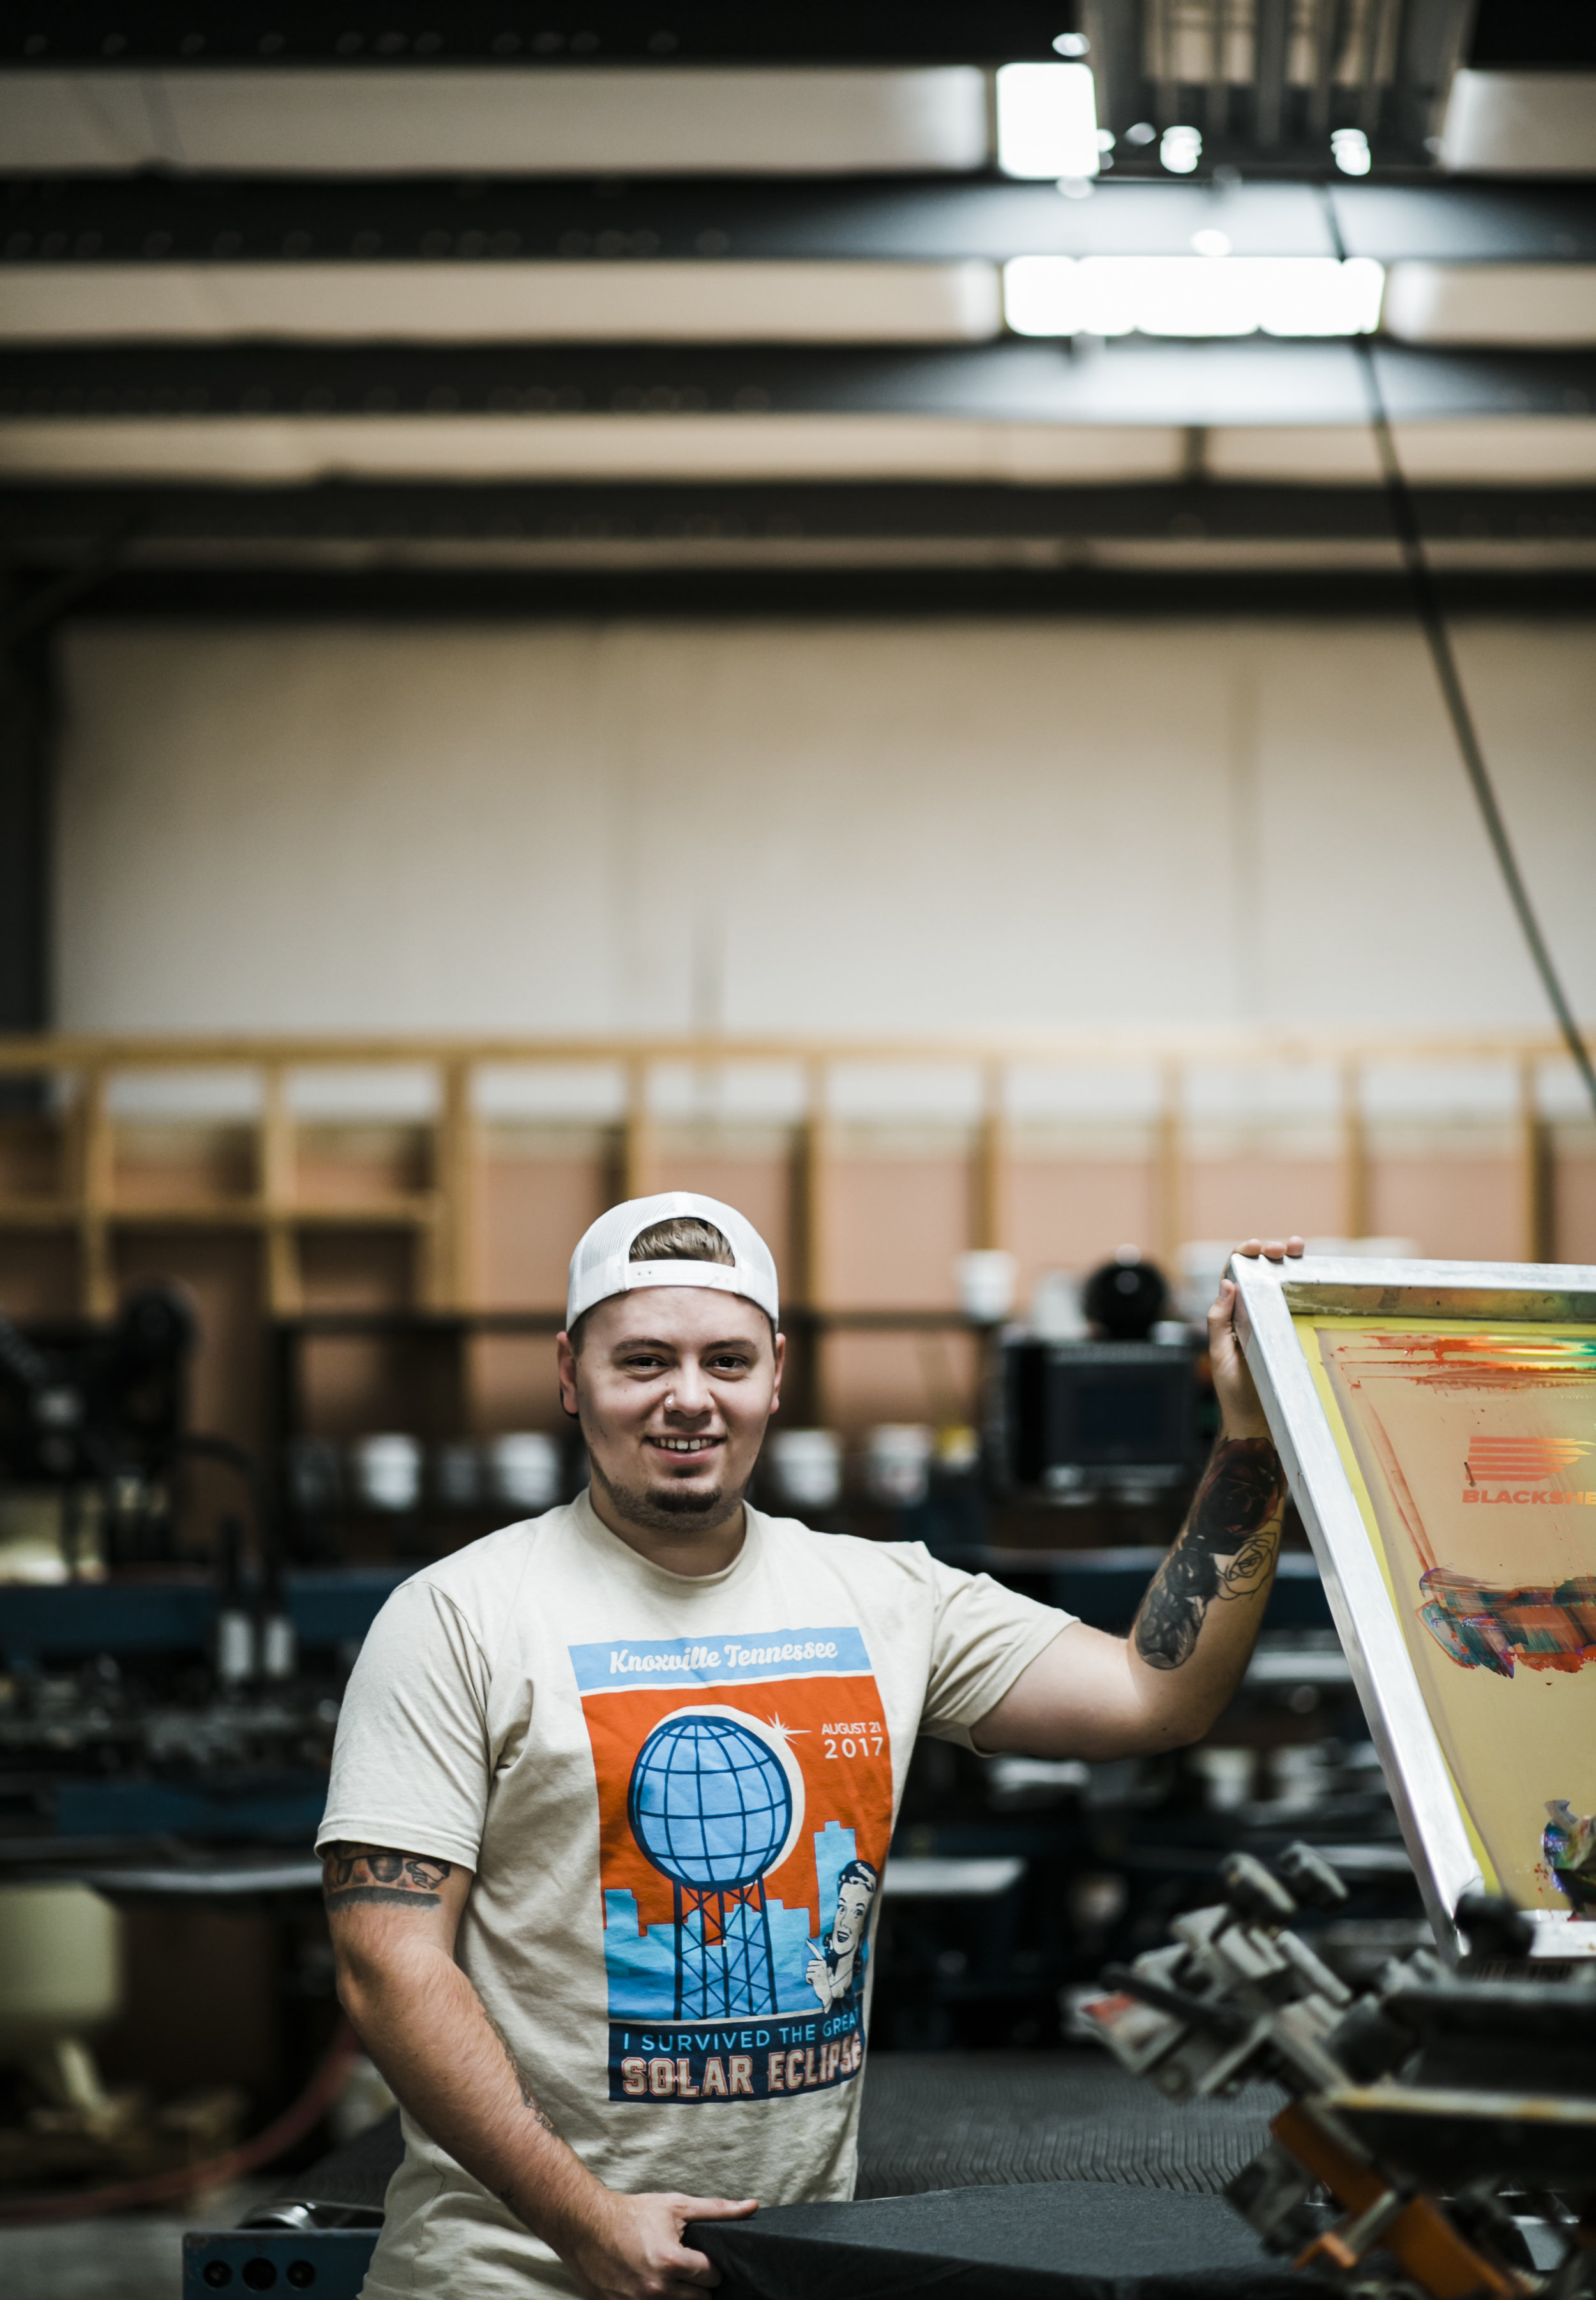 Jesse Barlow - Established in 2016, Blacksheep Printing had one goal –to make tee shirts better. Our team came together with years of combined experience in the industry with a common vision to do things differently.Our focus on our craft,and dedication to our community has been the driving force behind our company.